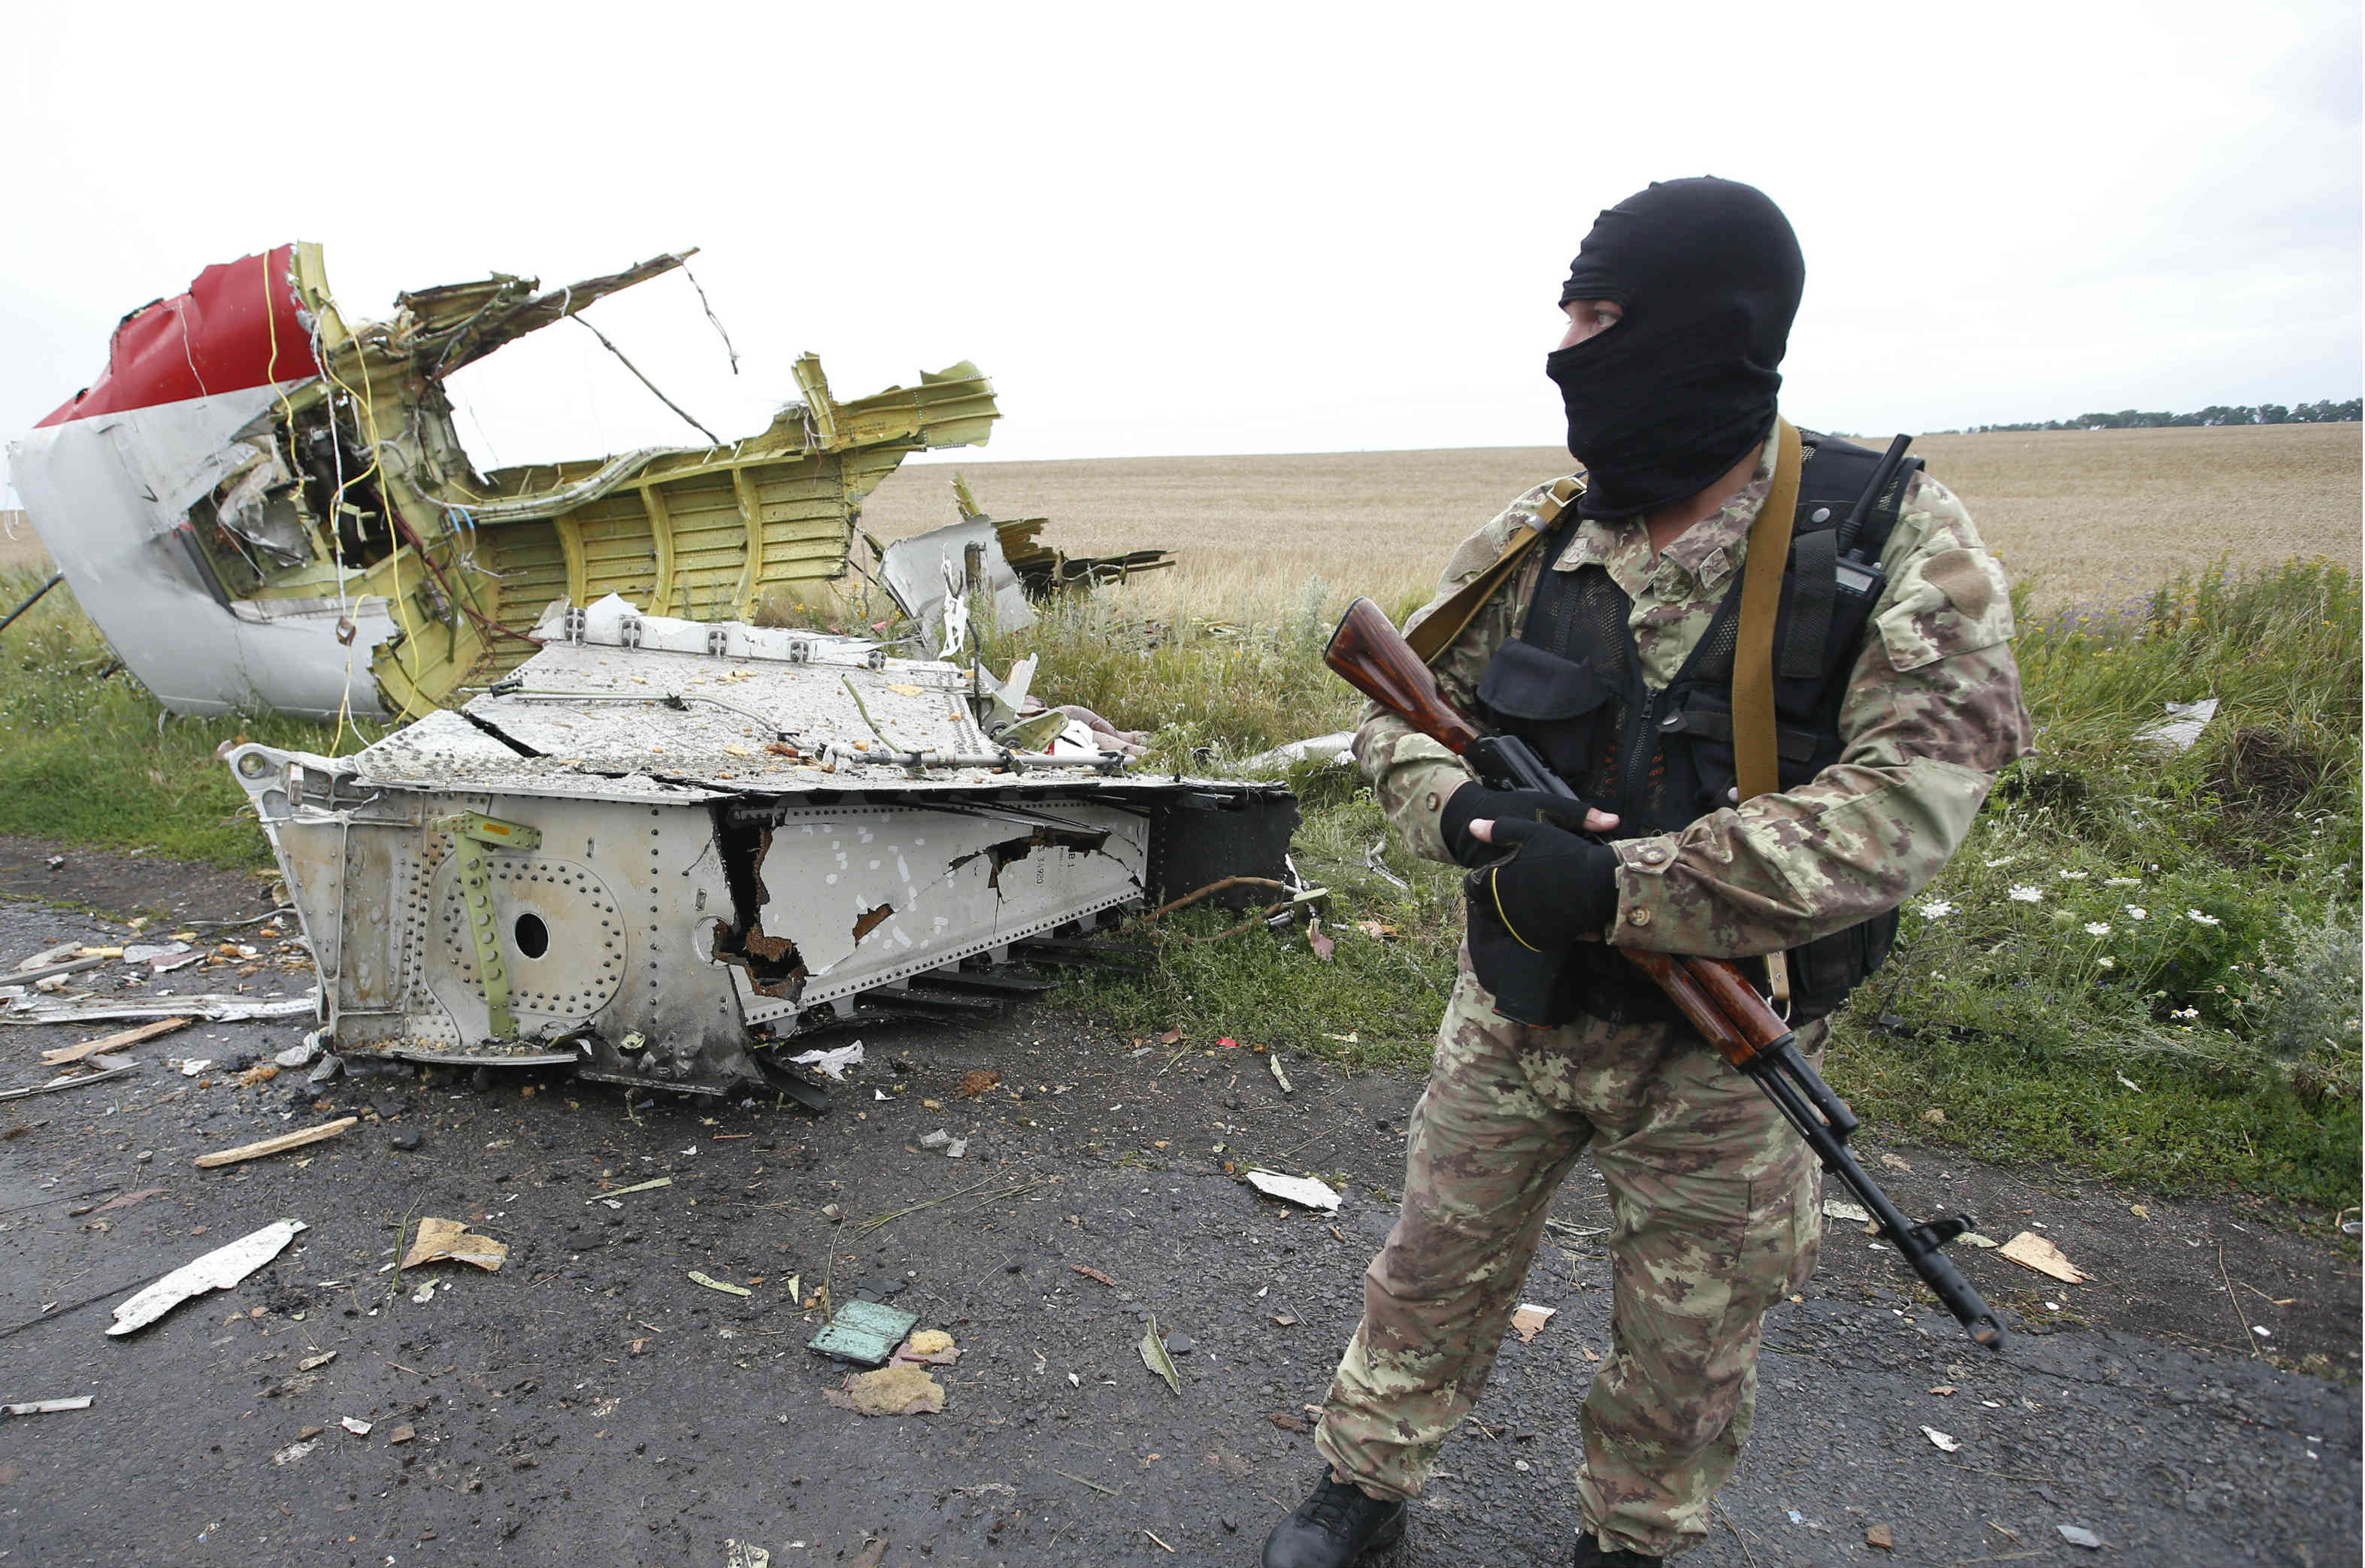 Moscow's Veto of MH17 Tribunal: A Blunder of Potentially Huge Proportions